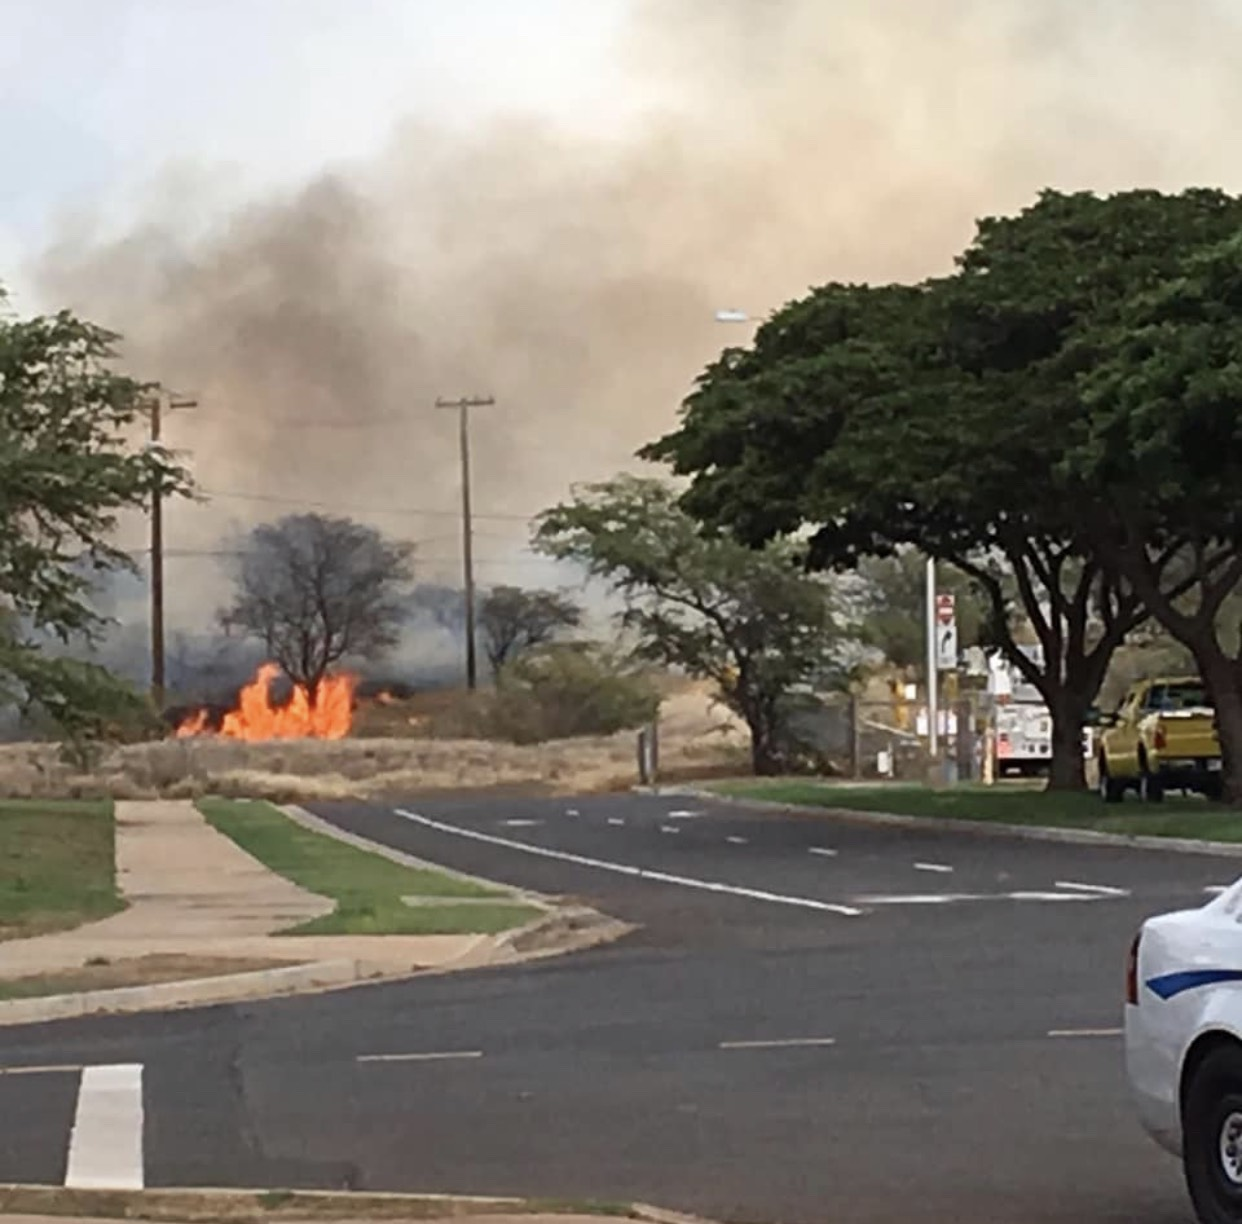 Mop-up Underway for Three Maui Fires, Kīhei Fire Burns 270 Acres